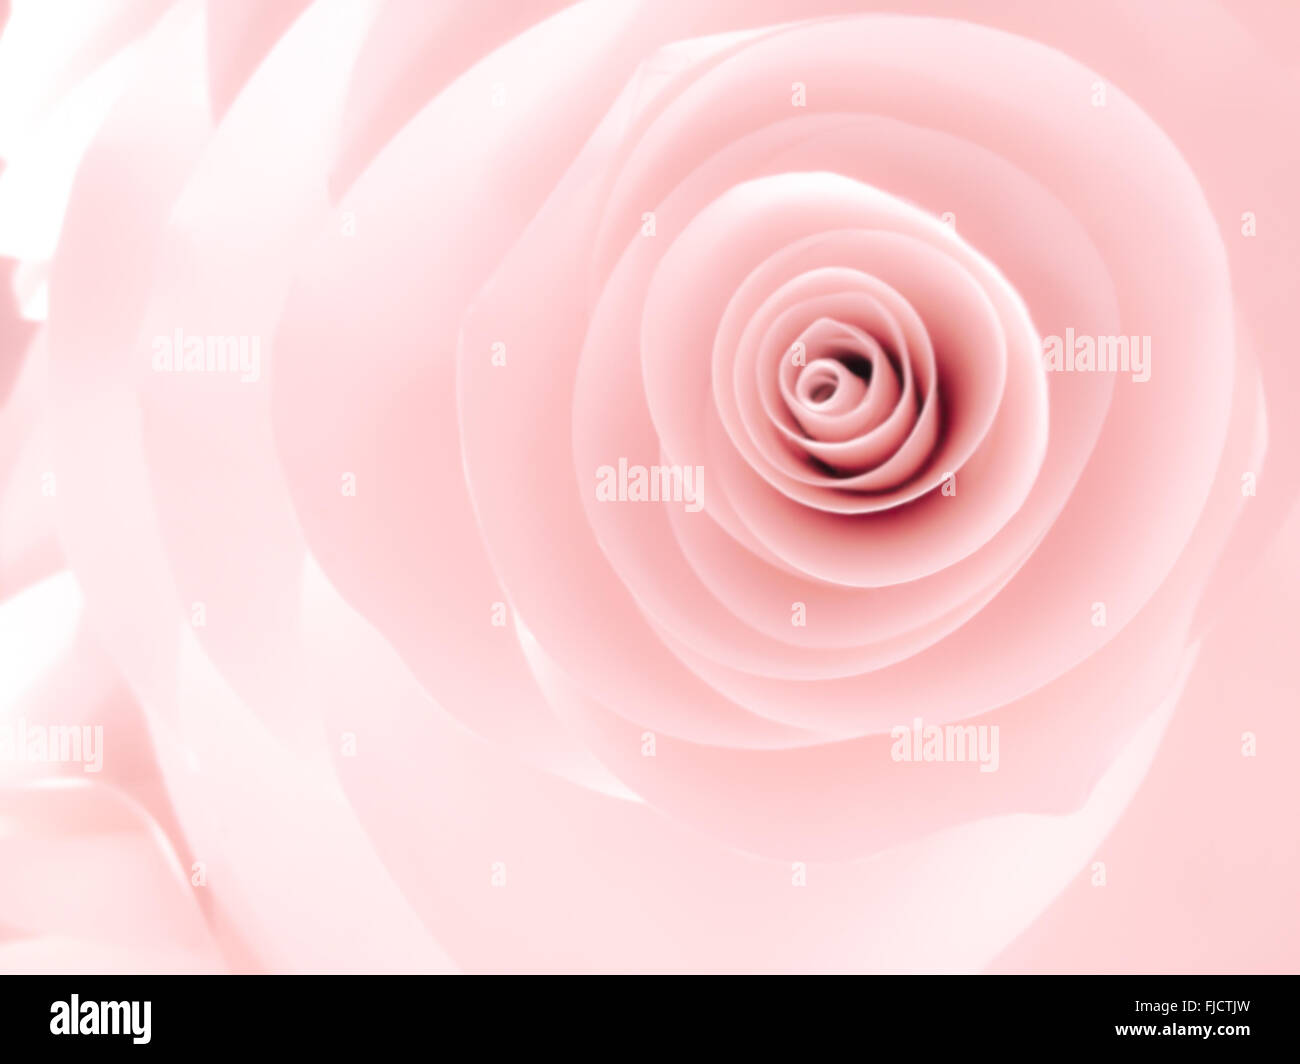 Abstract background paper flower pink rose blooming stock photo abstract background paper flower pink rose blooming mightylinksfo